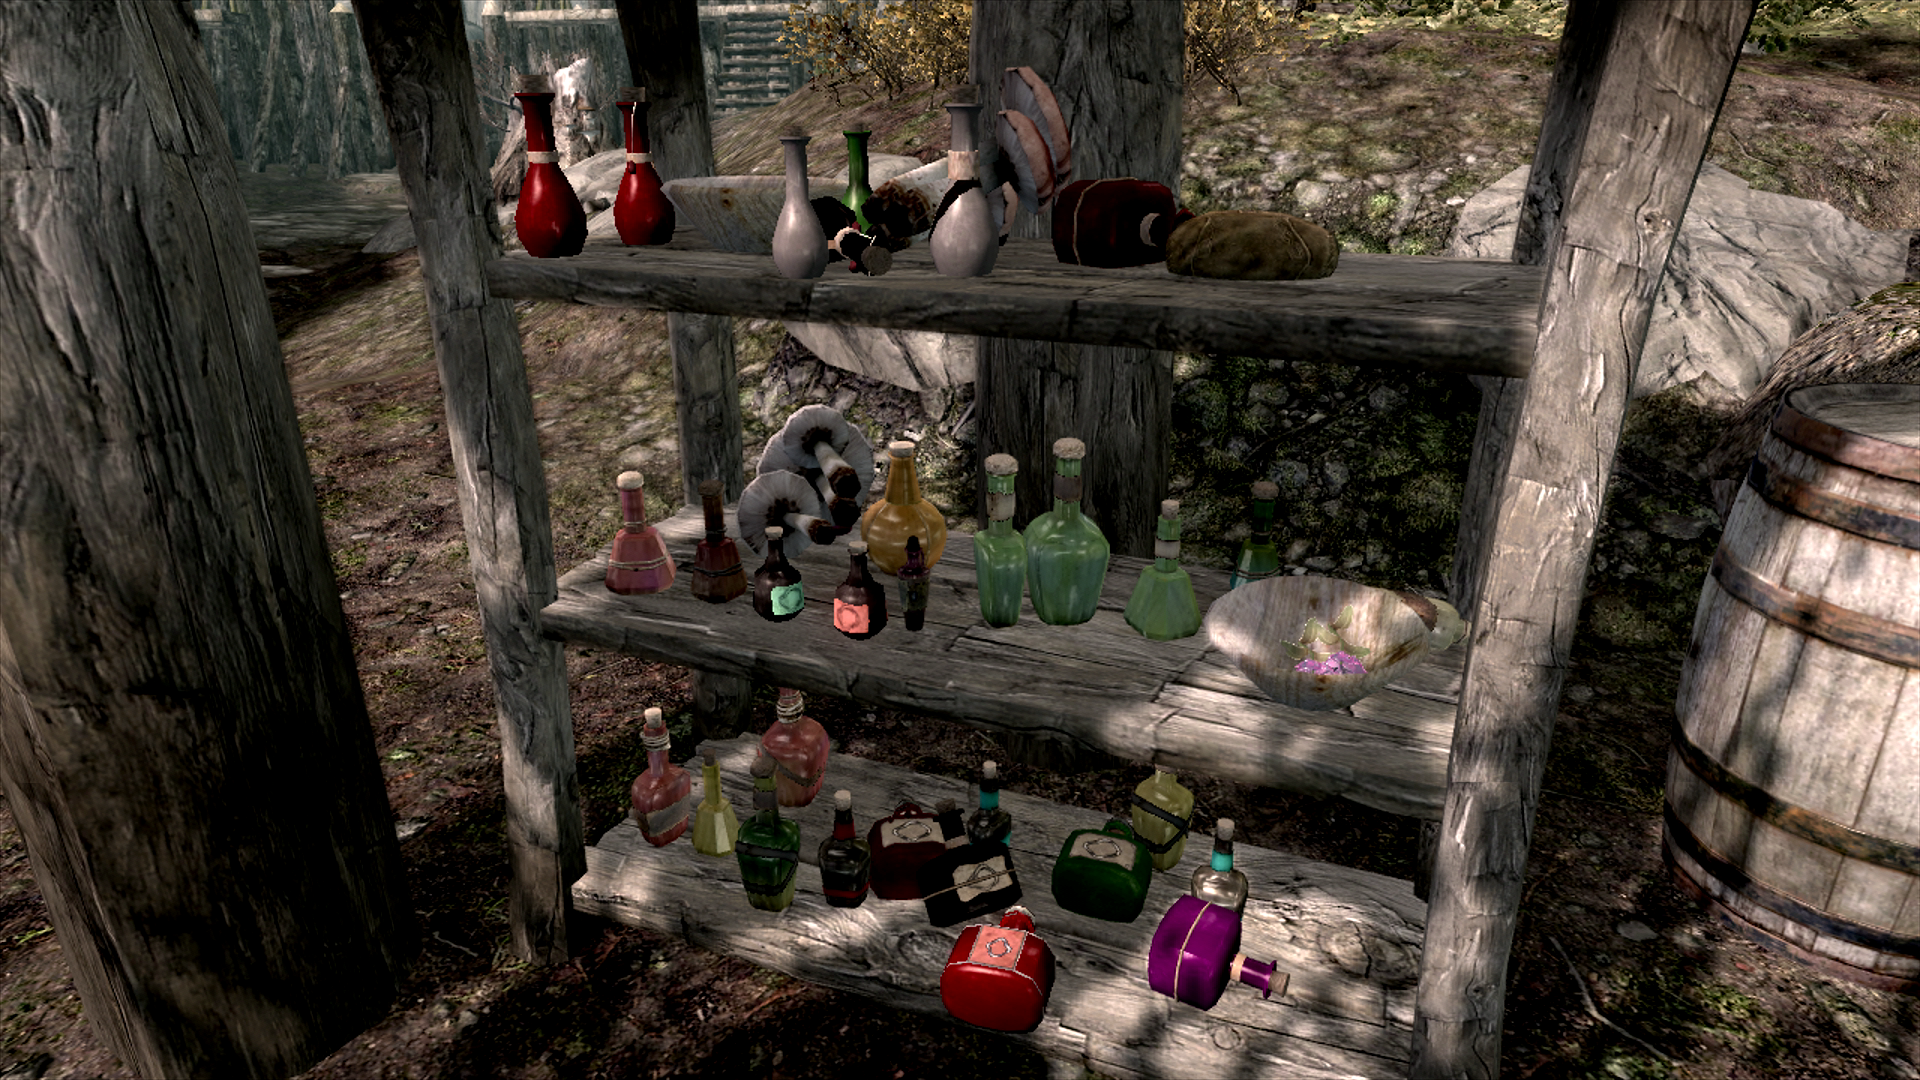 Let's collect all of the potions!